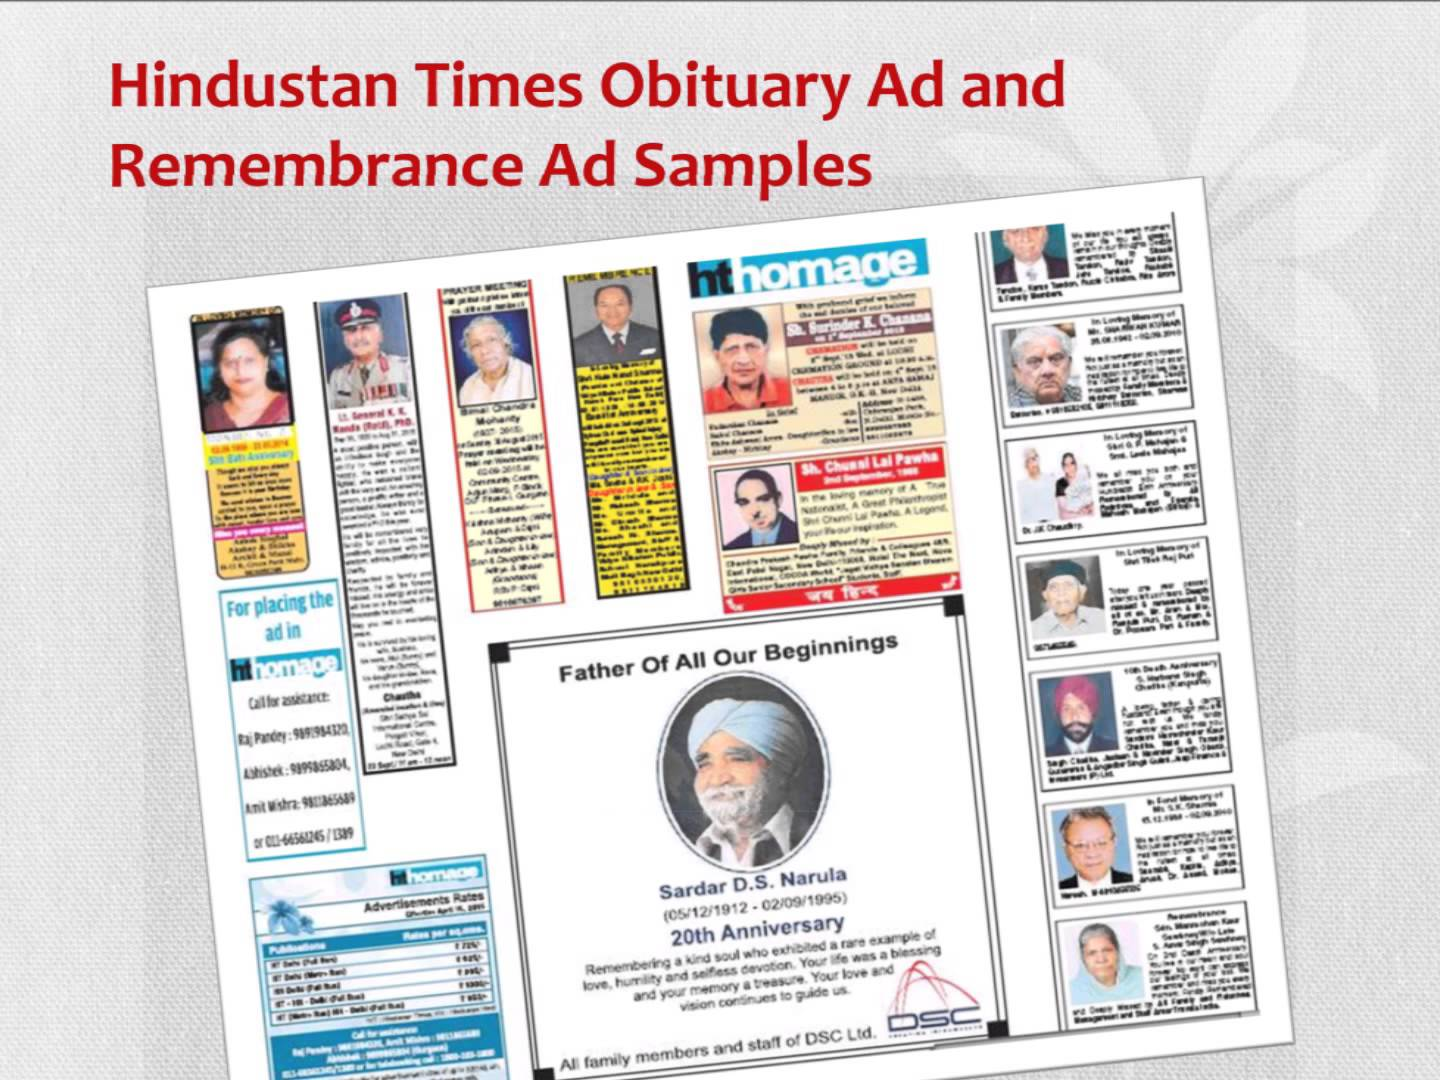 HT Obituary Advertisement